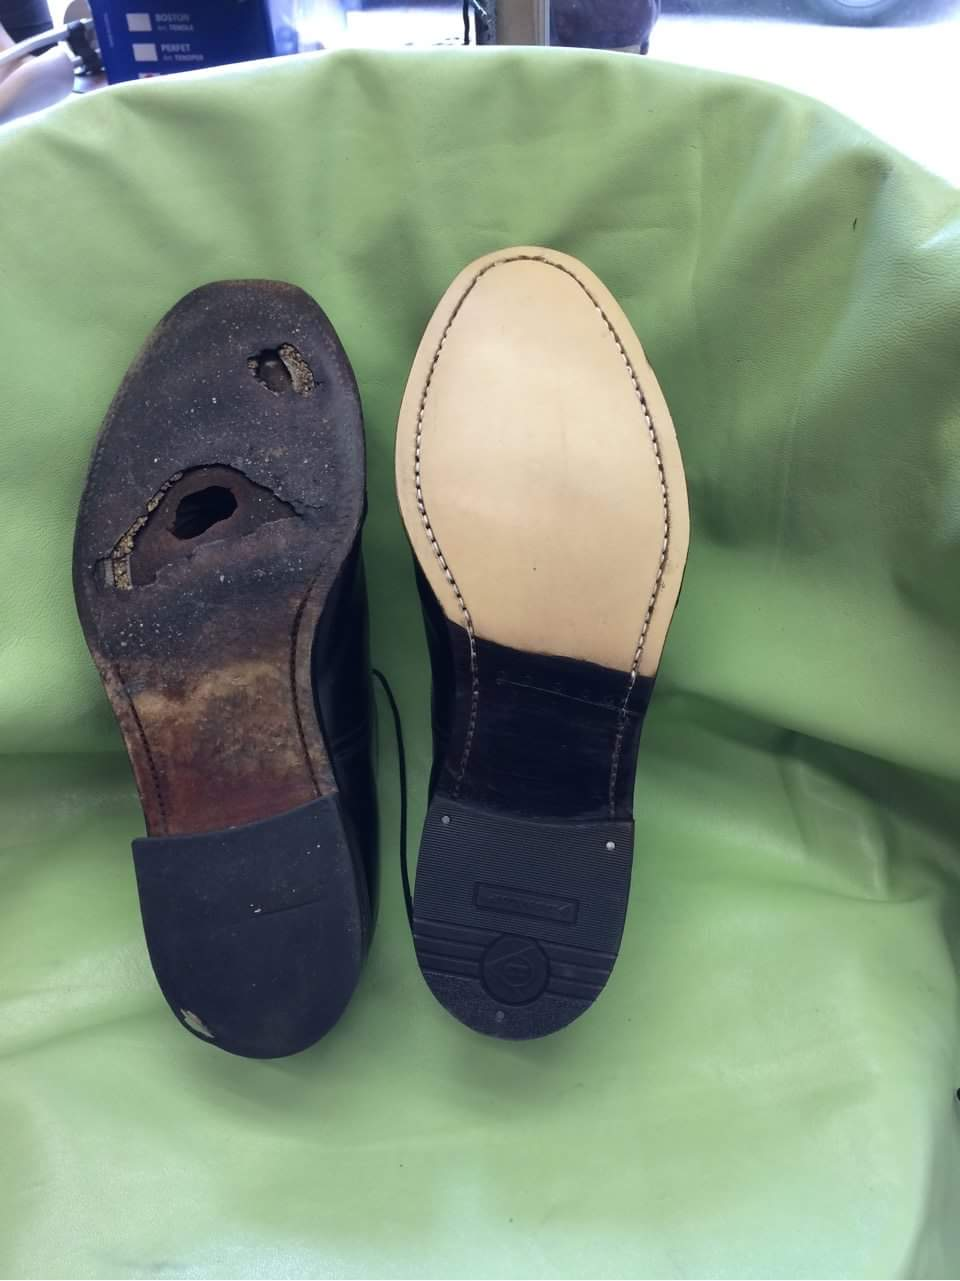 Get your shoes re-soled